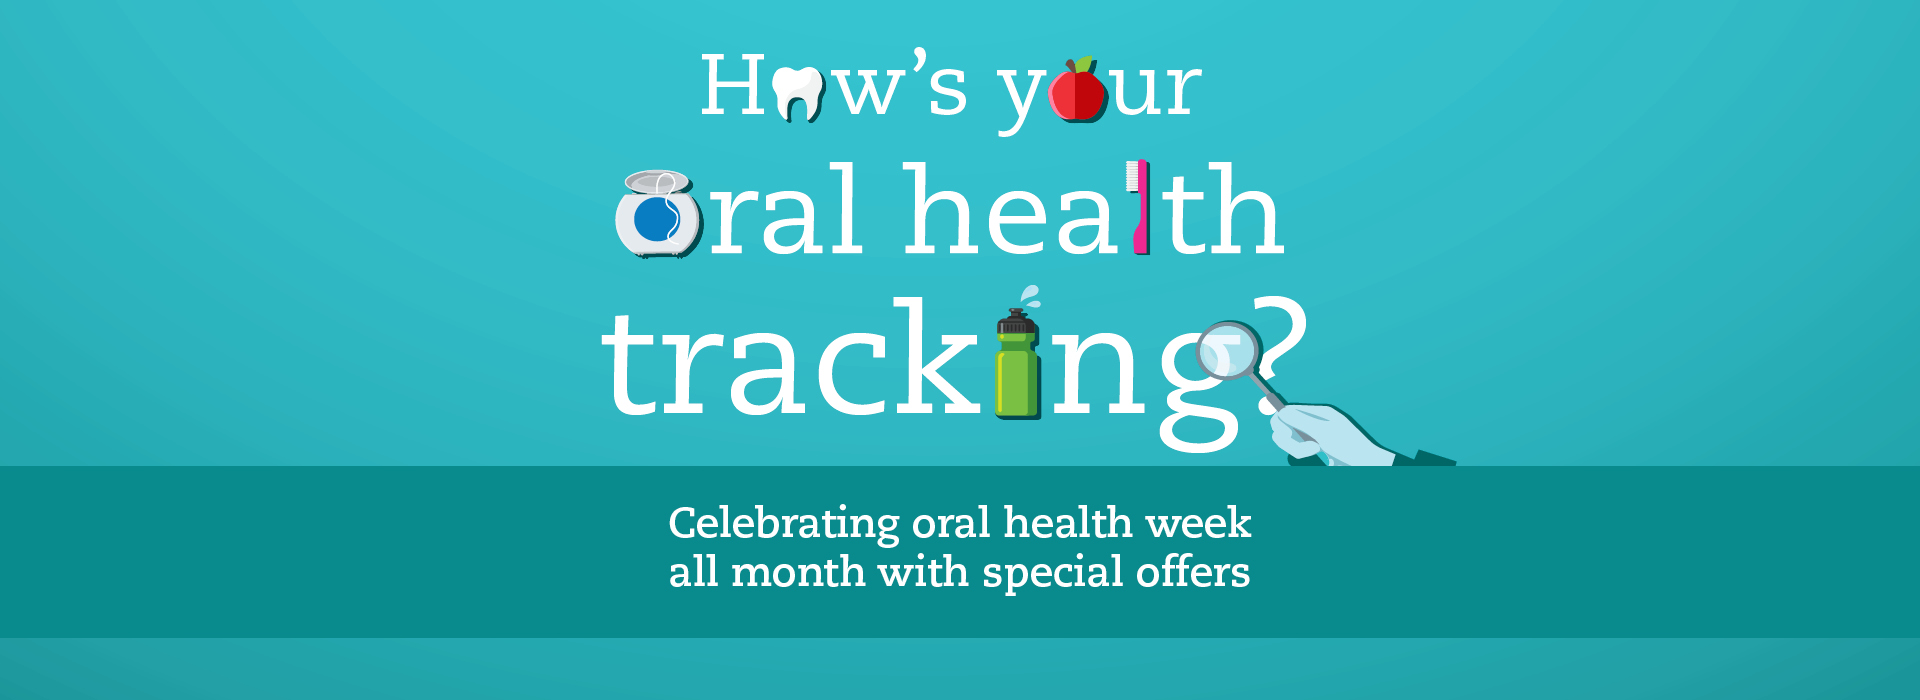 Celebrating oral health week all month with special offers